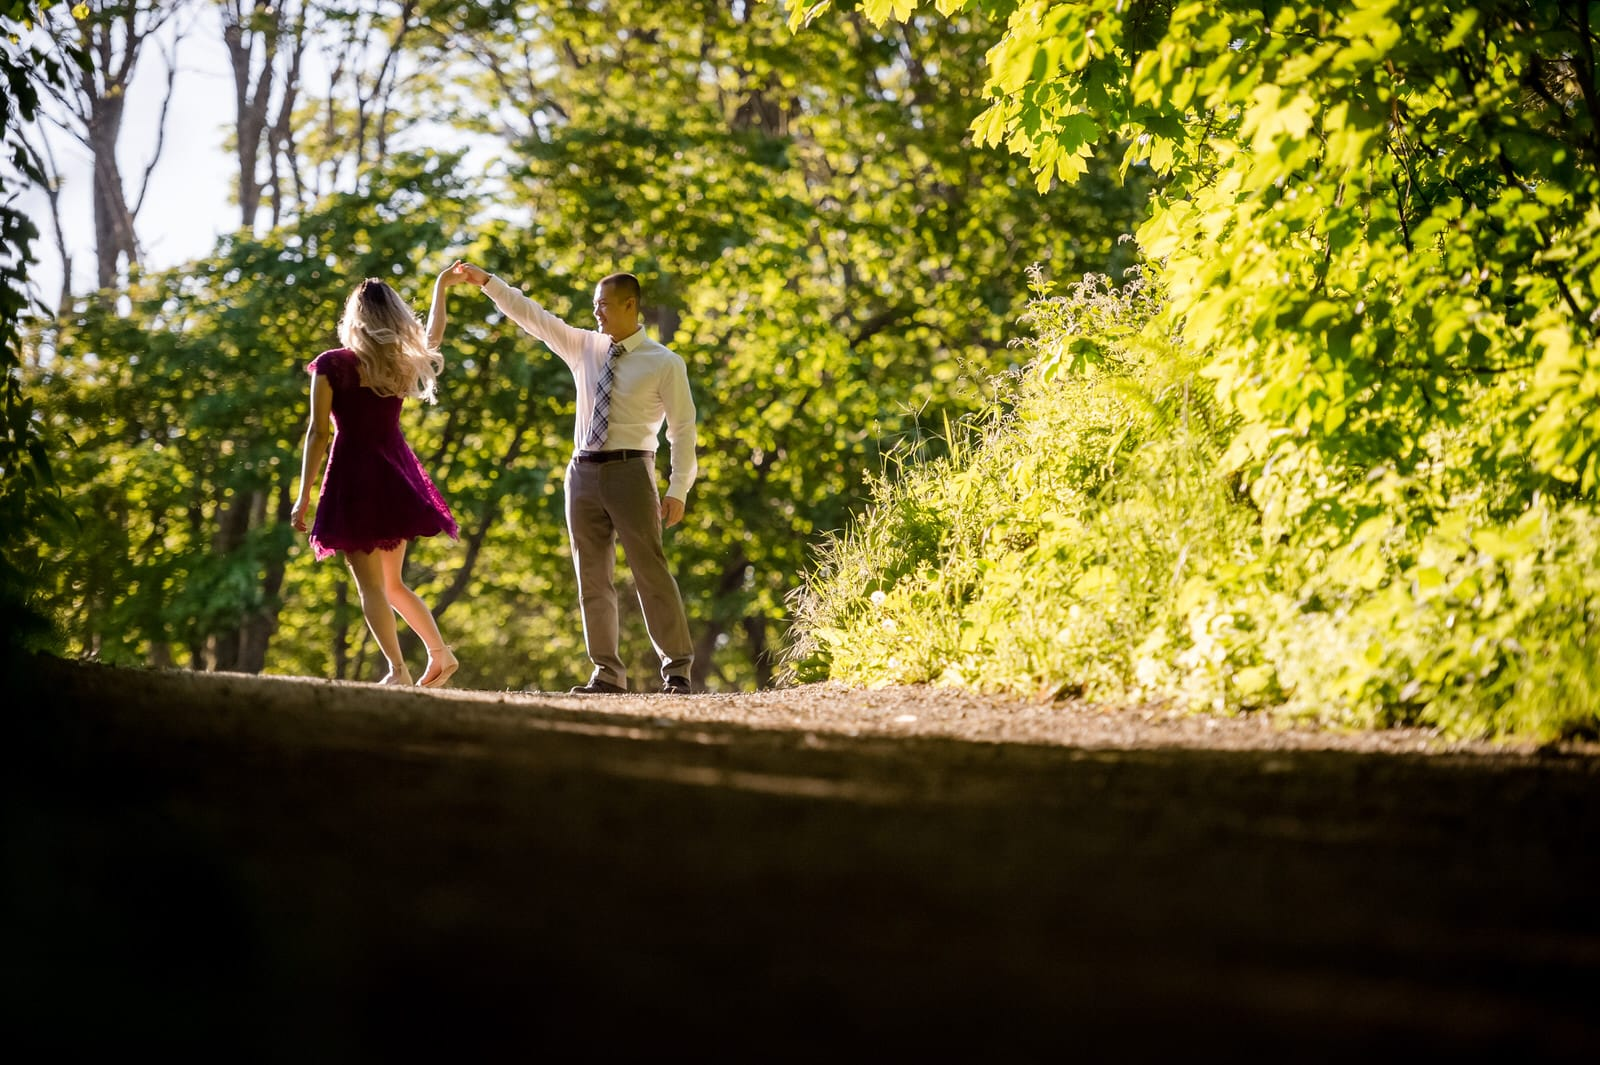 The couple is dancing in the sunlight on a forest path.